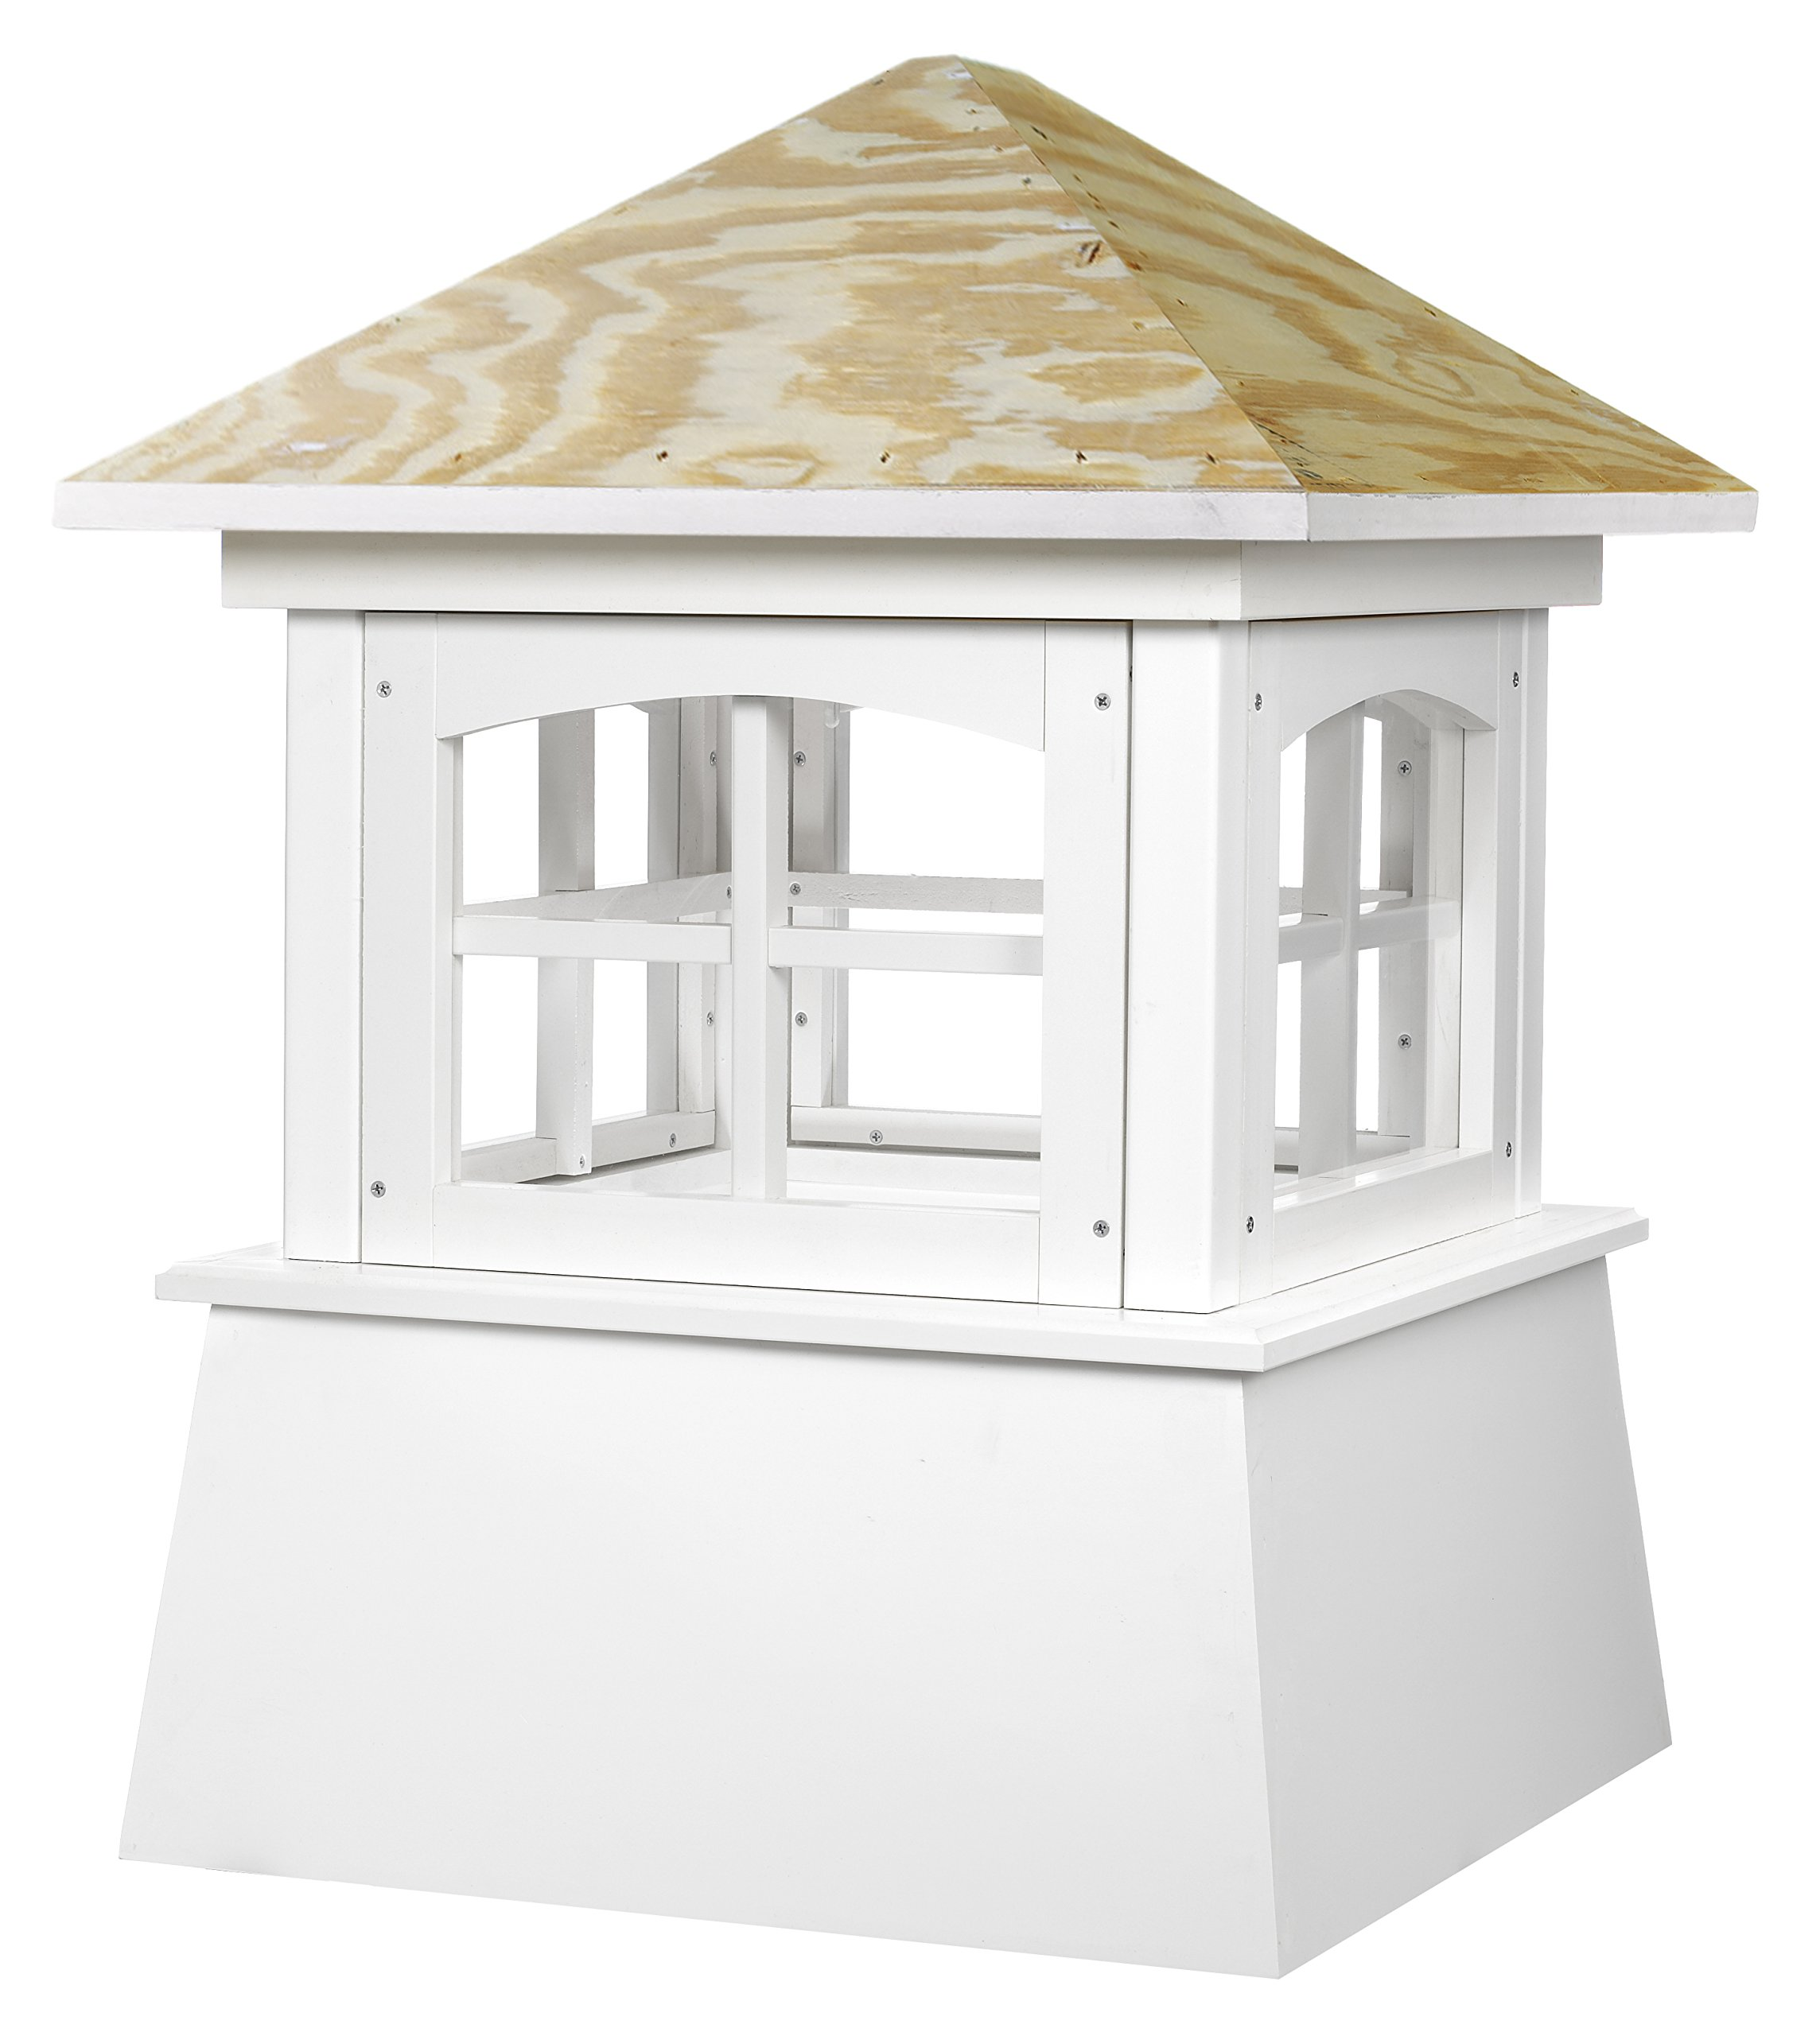 Good Directions Brookfield Vinyl Cupola with Wood Roof 18'' x 25'' by Good Directions